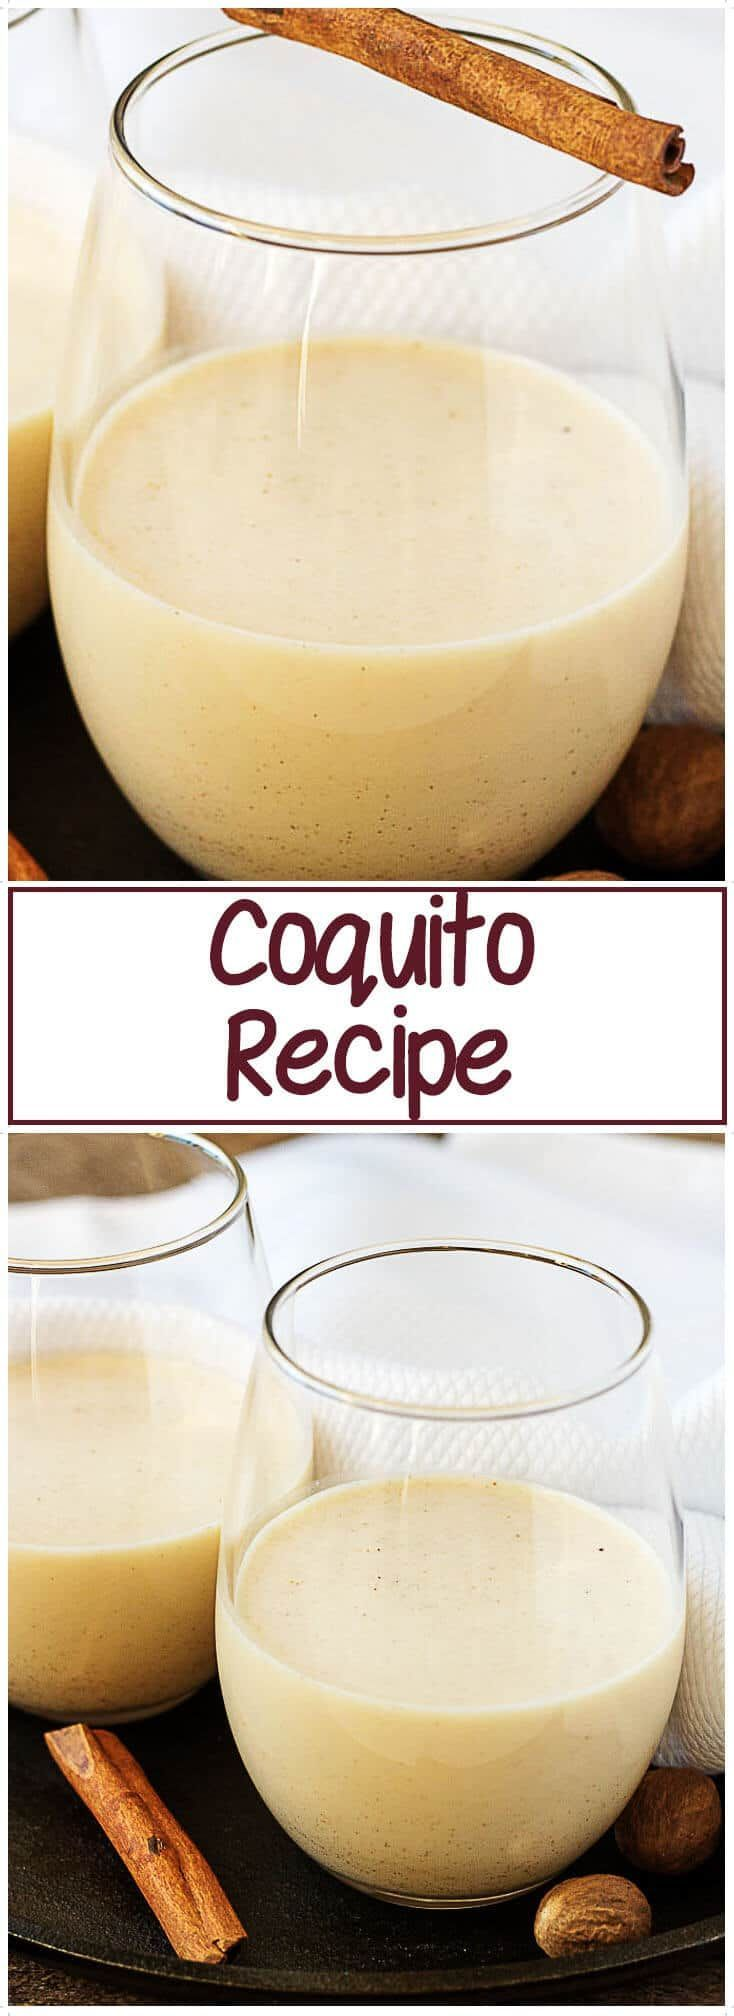 A simple Coquito recipe that's festive and perfect for lifting your holiday spirits. A rich and creamy coconut eggnog spiked with white rum. #coquito #eggnog  #alcohol #Christmas via @berlyskitchen